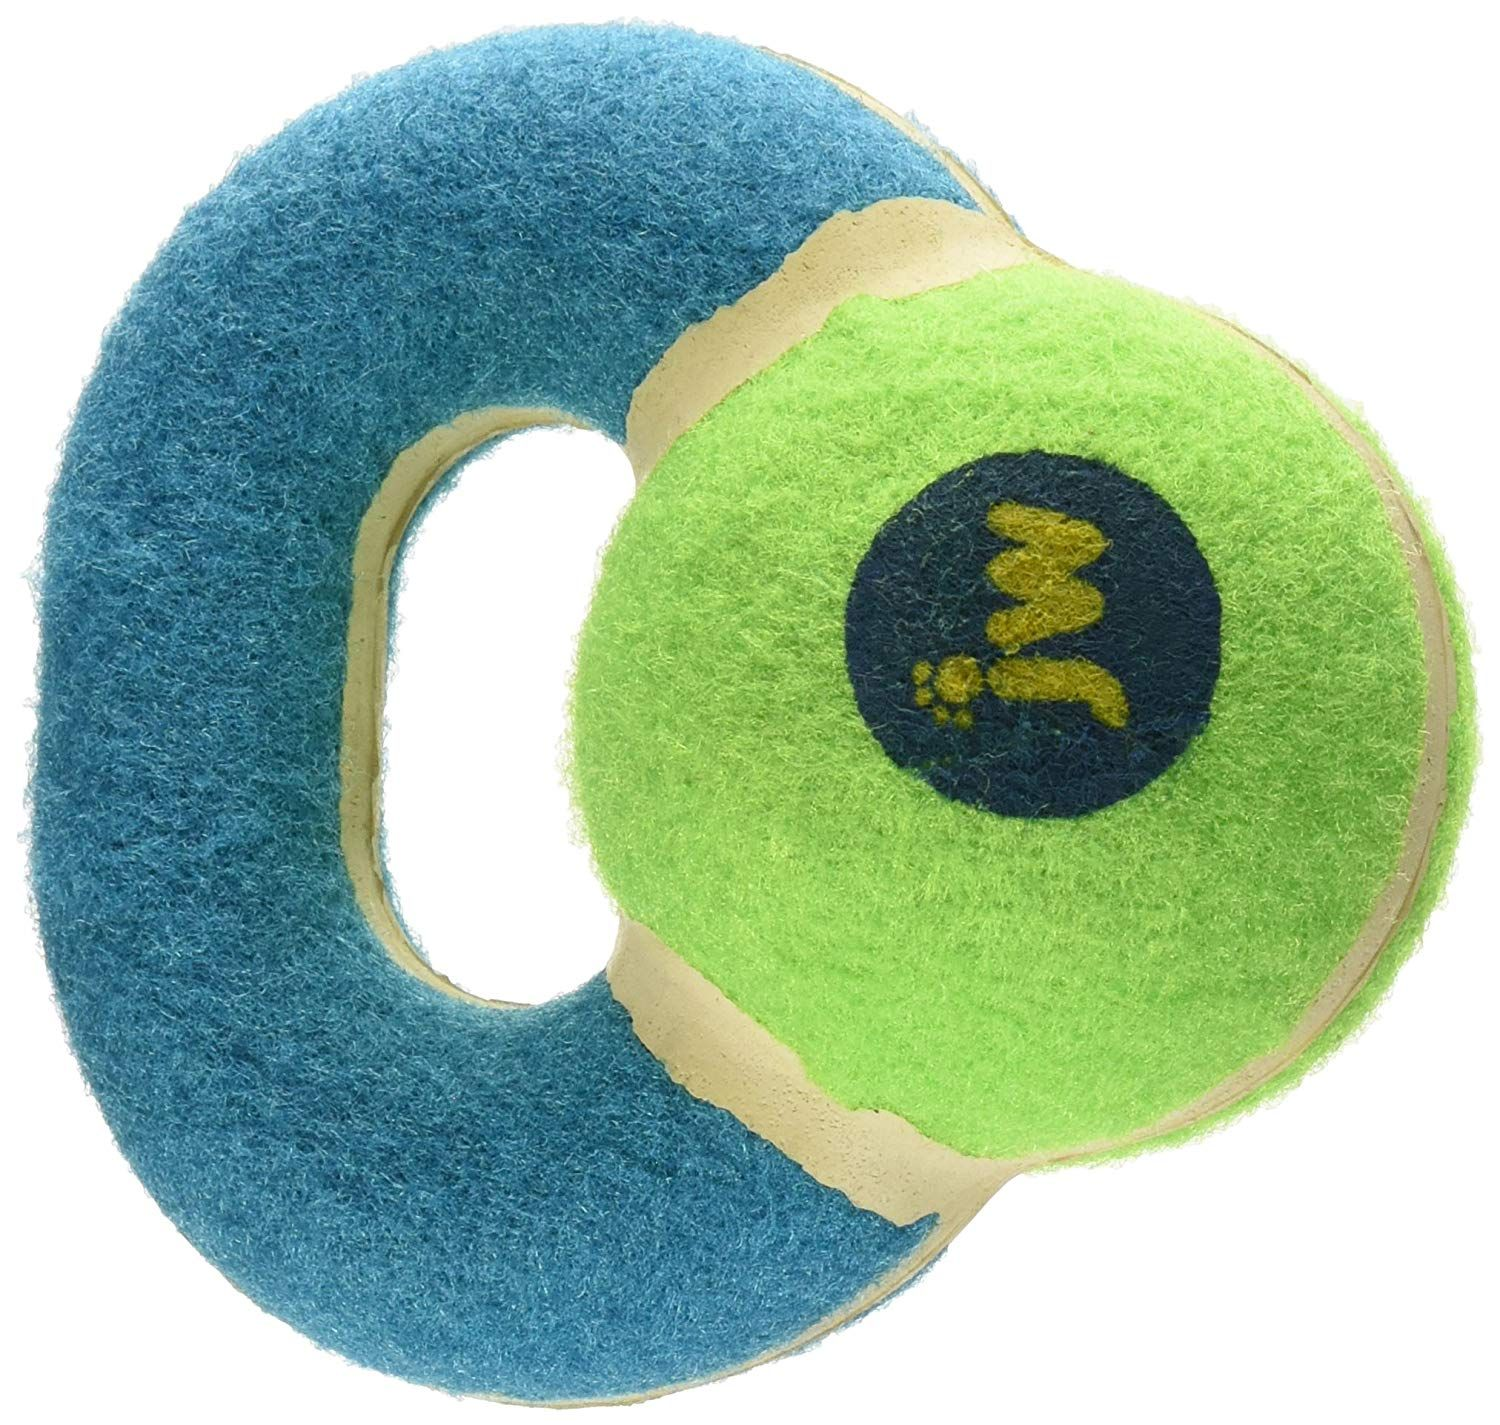 Jw Pet Company 42208 Proten Kettle Ball For Pets Small Assorted